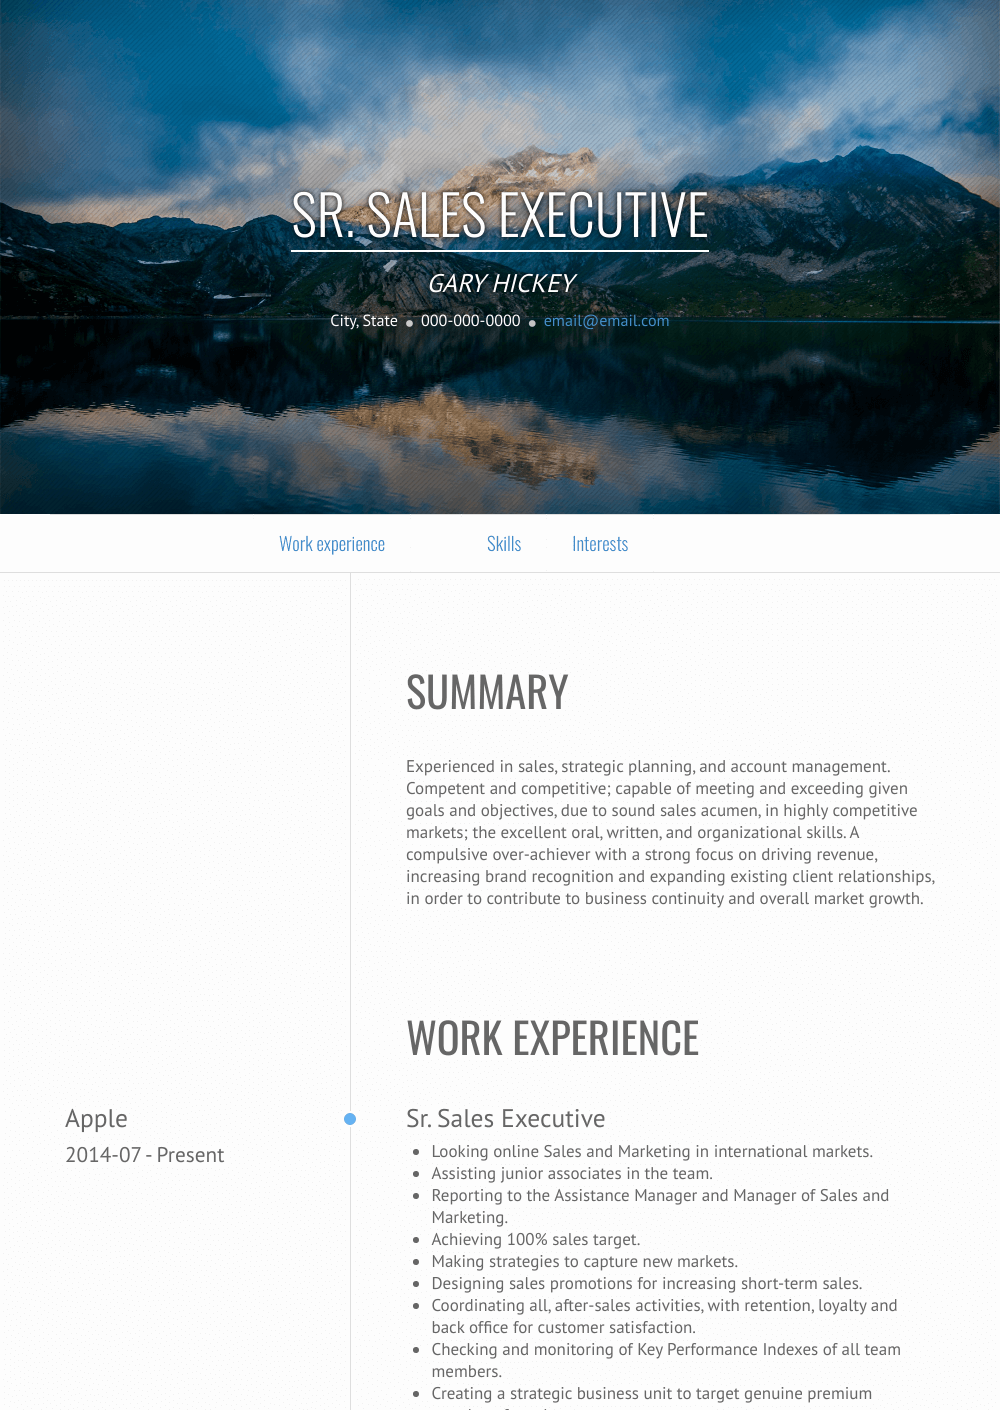 Senior Sales Executive - Resume Samples and Templates | VisualCV